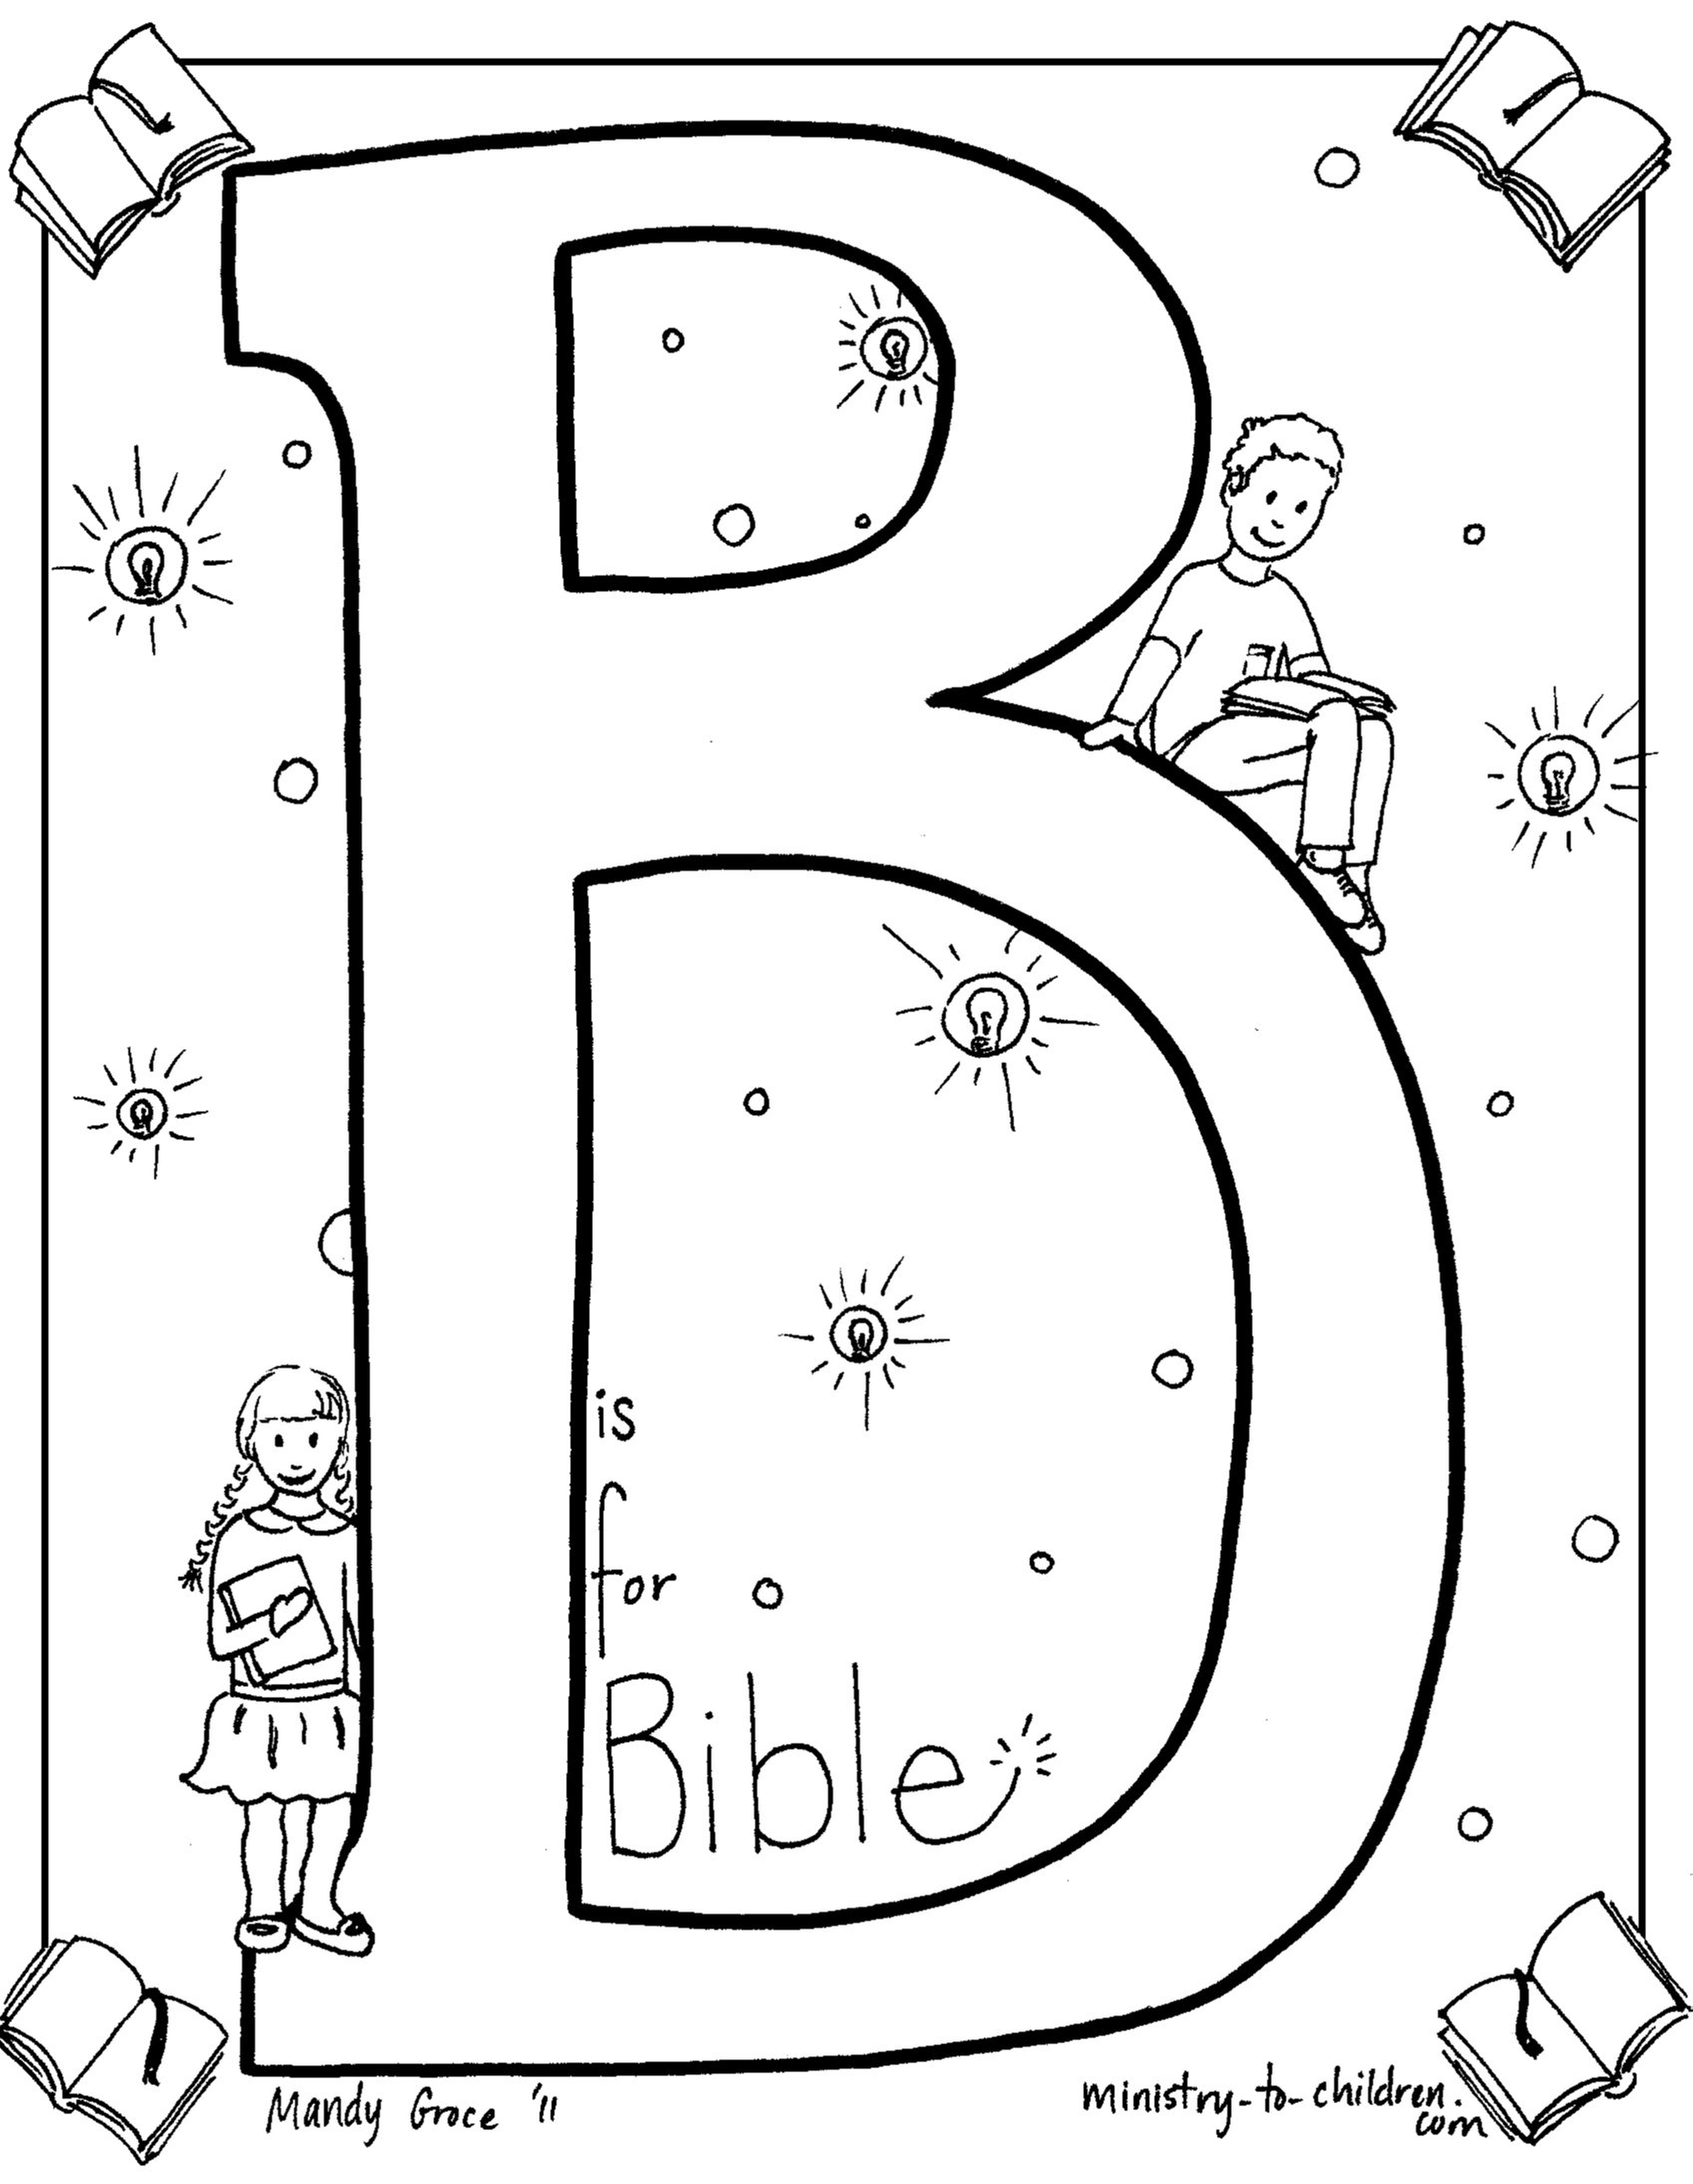 Preschool Bible Coloring Pages  Faithful obe nce 18 Bible coloring pages clip art